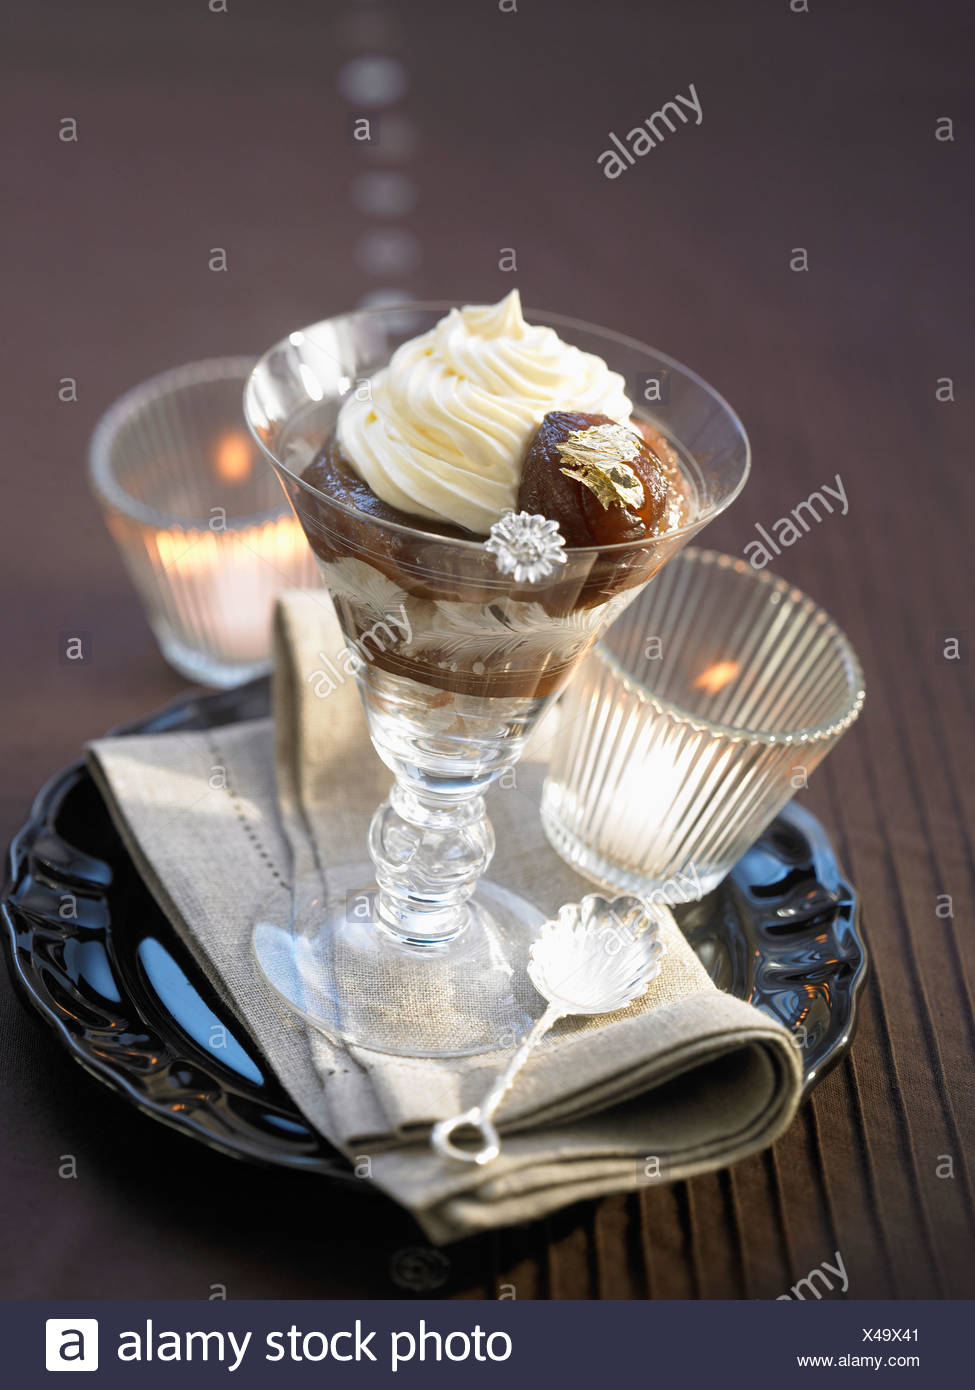 Mont-blanc and candied chestnut dessert - Stock Image